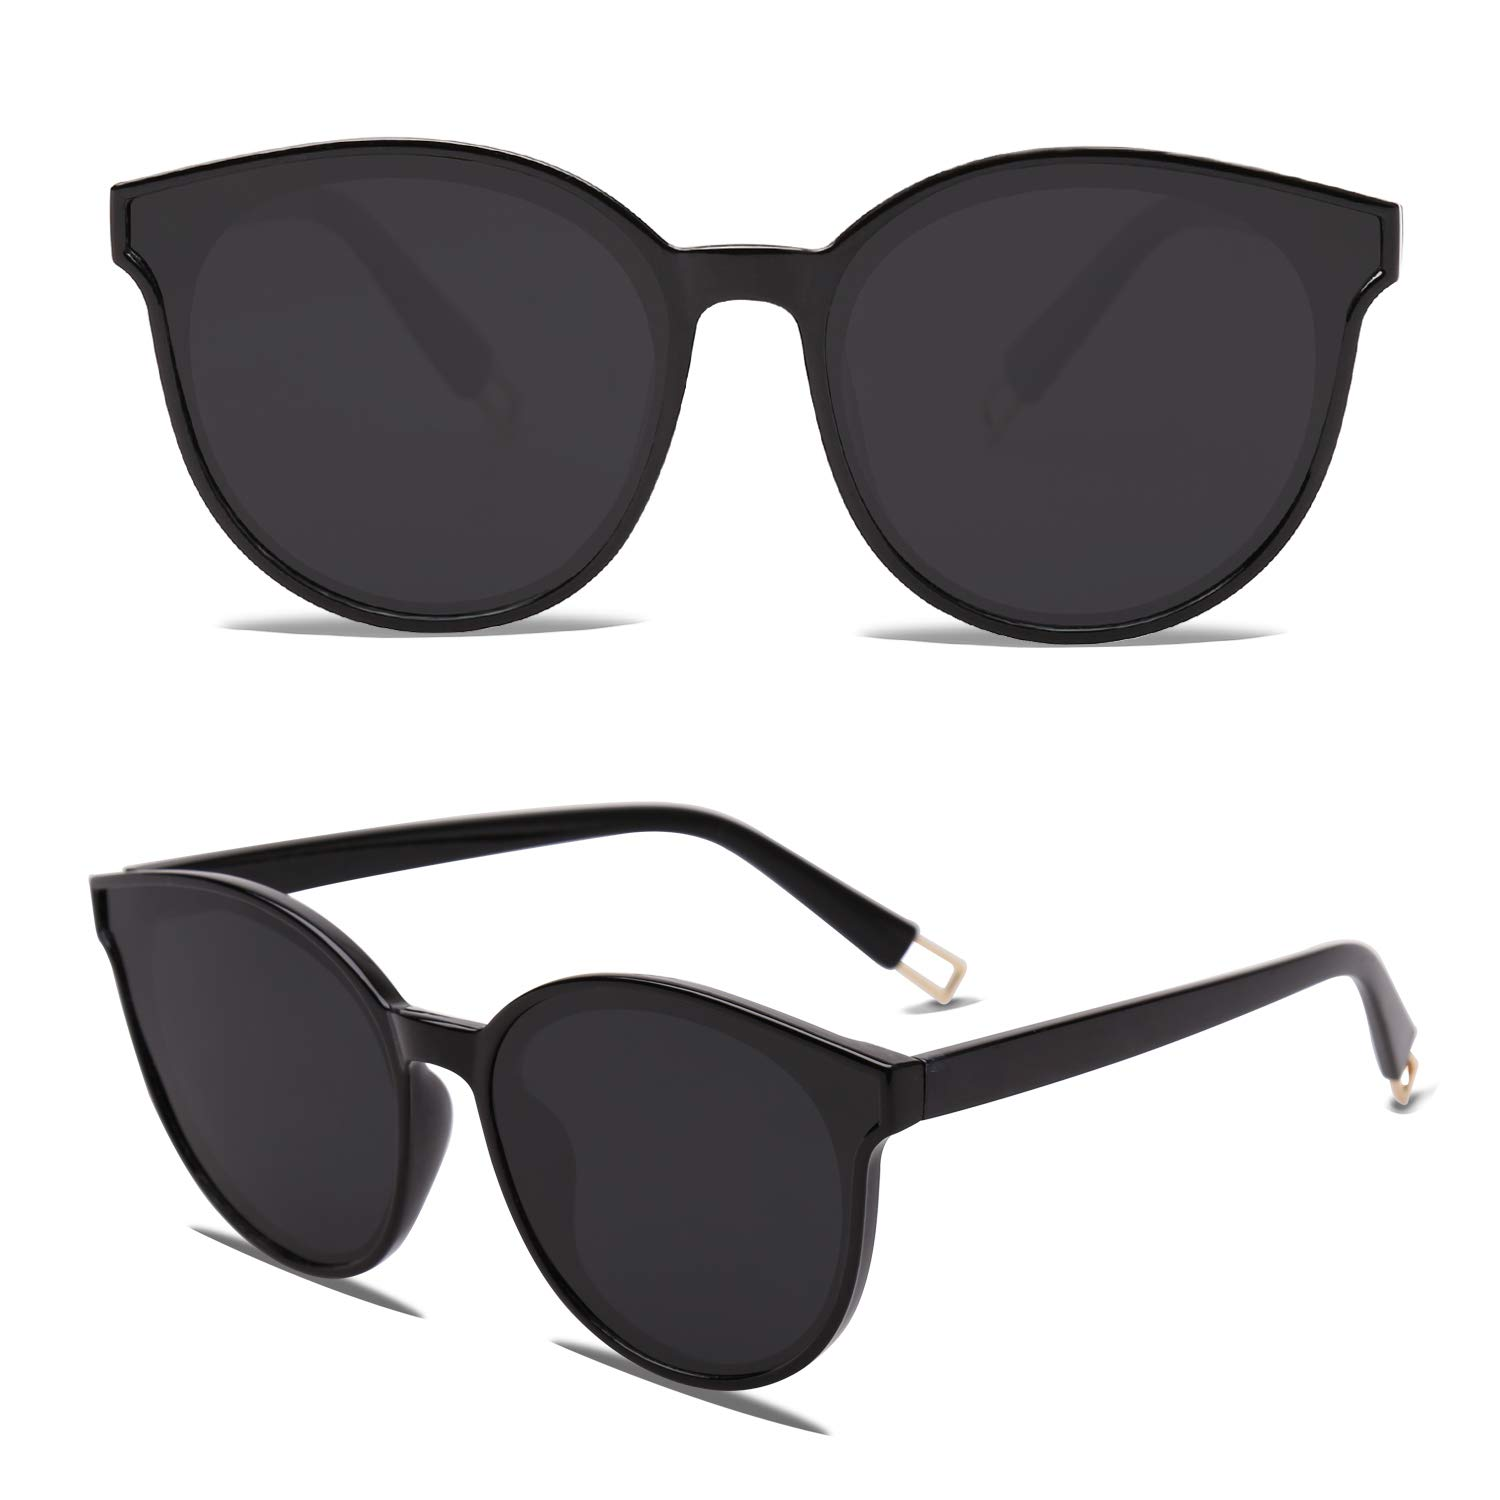 c11a27cd6f SOJOS Fashion Round Sunglasses for Women Men Oversized Vintage Shades  SJ2057 with Black Frame Grey Lens at Amazon Women s Clothing store